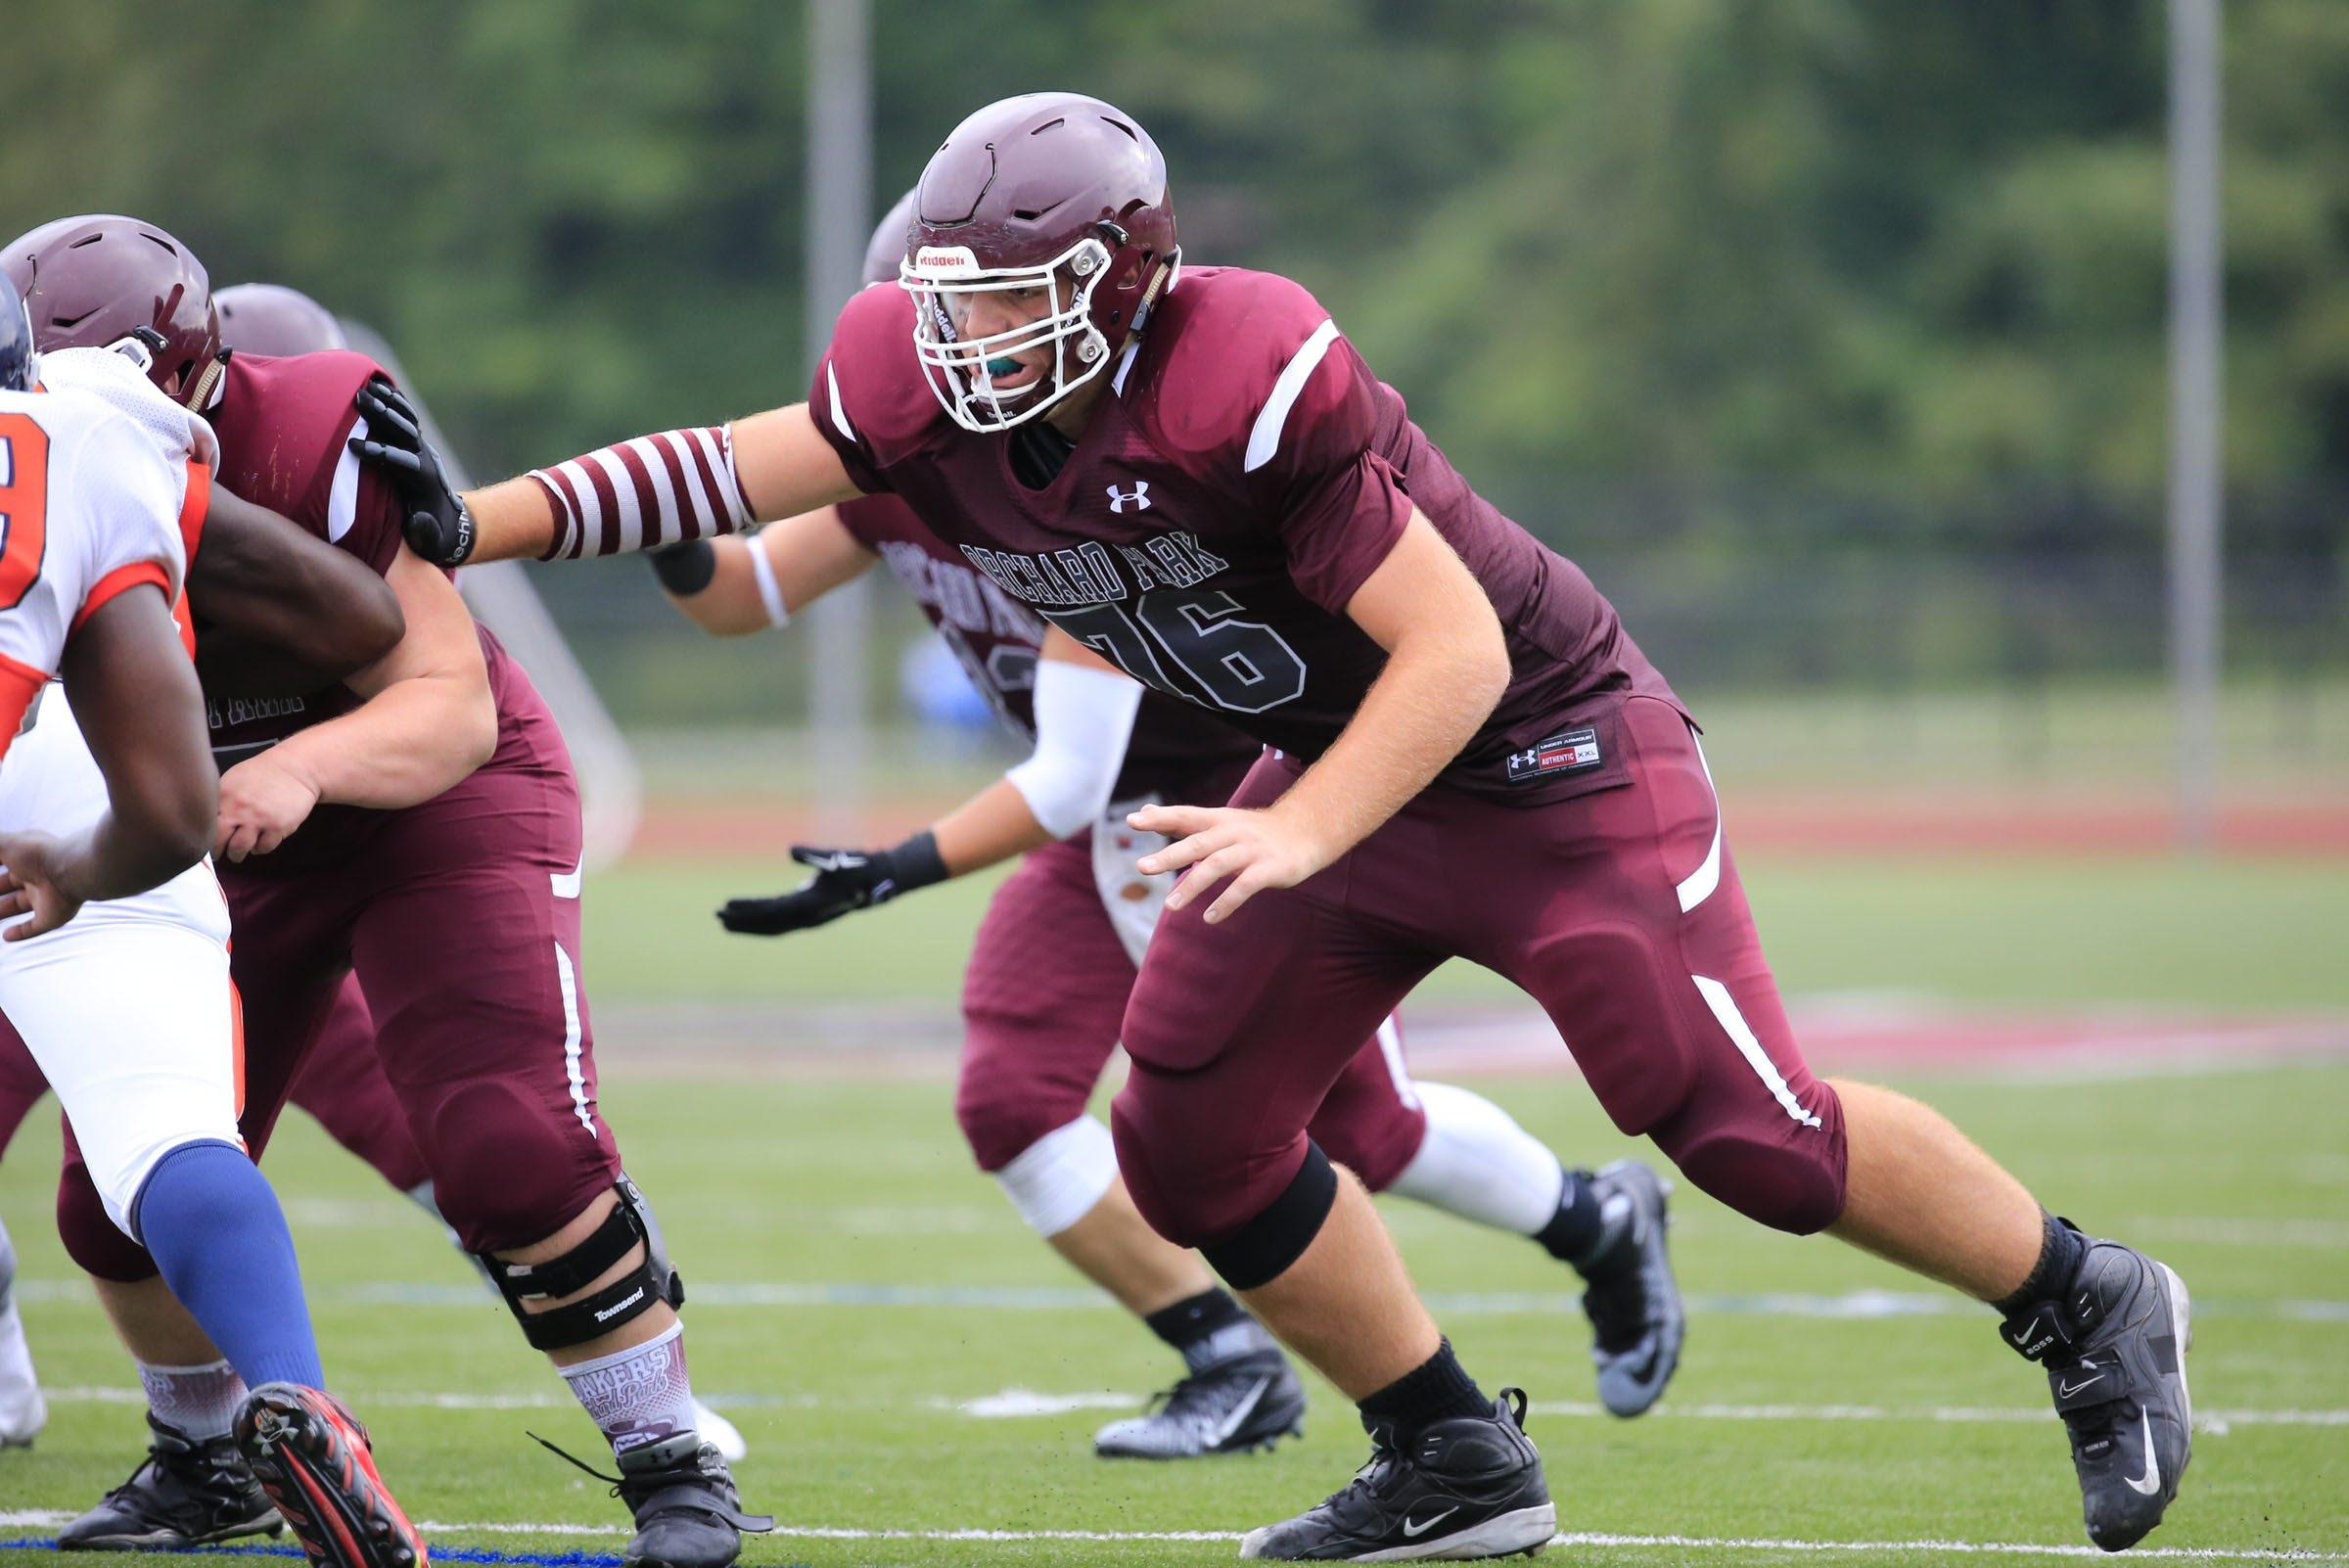 Offensive lineman Dan Kubik and Orchard Park open the season Friday night by hosting Pittsford of Section V.        blocks against Bennett during action at Orchard Park High School on Saturday, Sept. 19, 2015.  (Harry Scull Jr./Buffalo News)  2015 All-Western New York underclassmen: Two All-WNY first team linemen who could be finalists for the Trench Trophy call Class AA South home. Six-foot-7 Dan Kubik of Orchard Park comes off a season in which he was honored for his work on the offensive line.  Defending Class AA champion Orchard Park Week One (Sept. 2-3): Opening night features defending champion Orchard Park hosting Pittsford of Section V at 7 p.m.